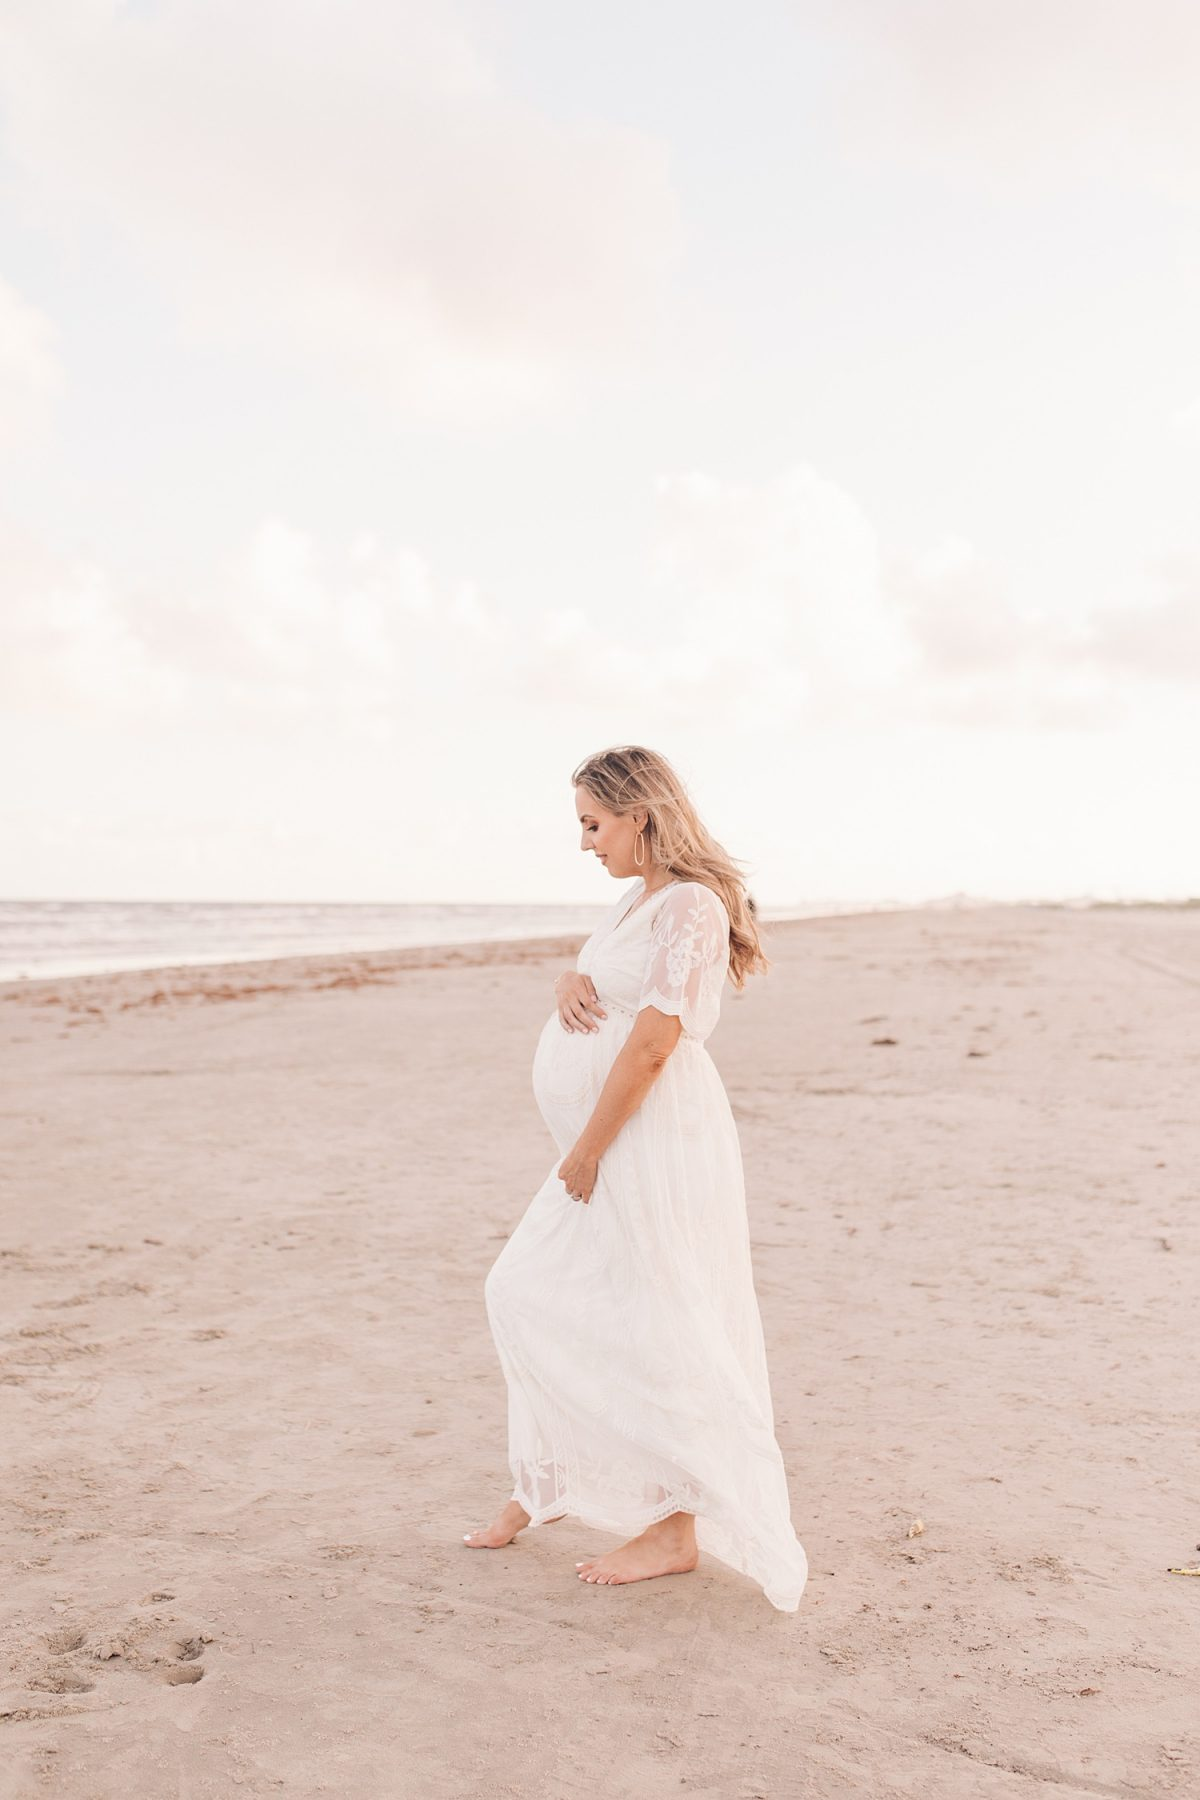 Houston mommy blogger Meg O. on the Go shares her beach maternity shoot - lots of maternity photo ideas